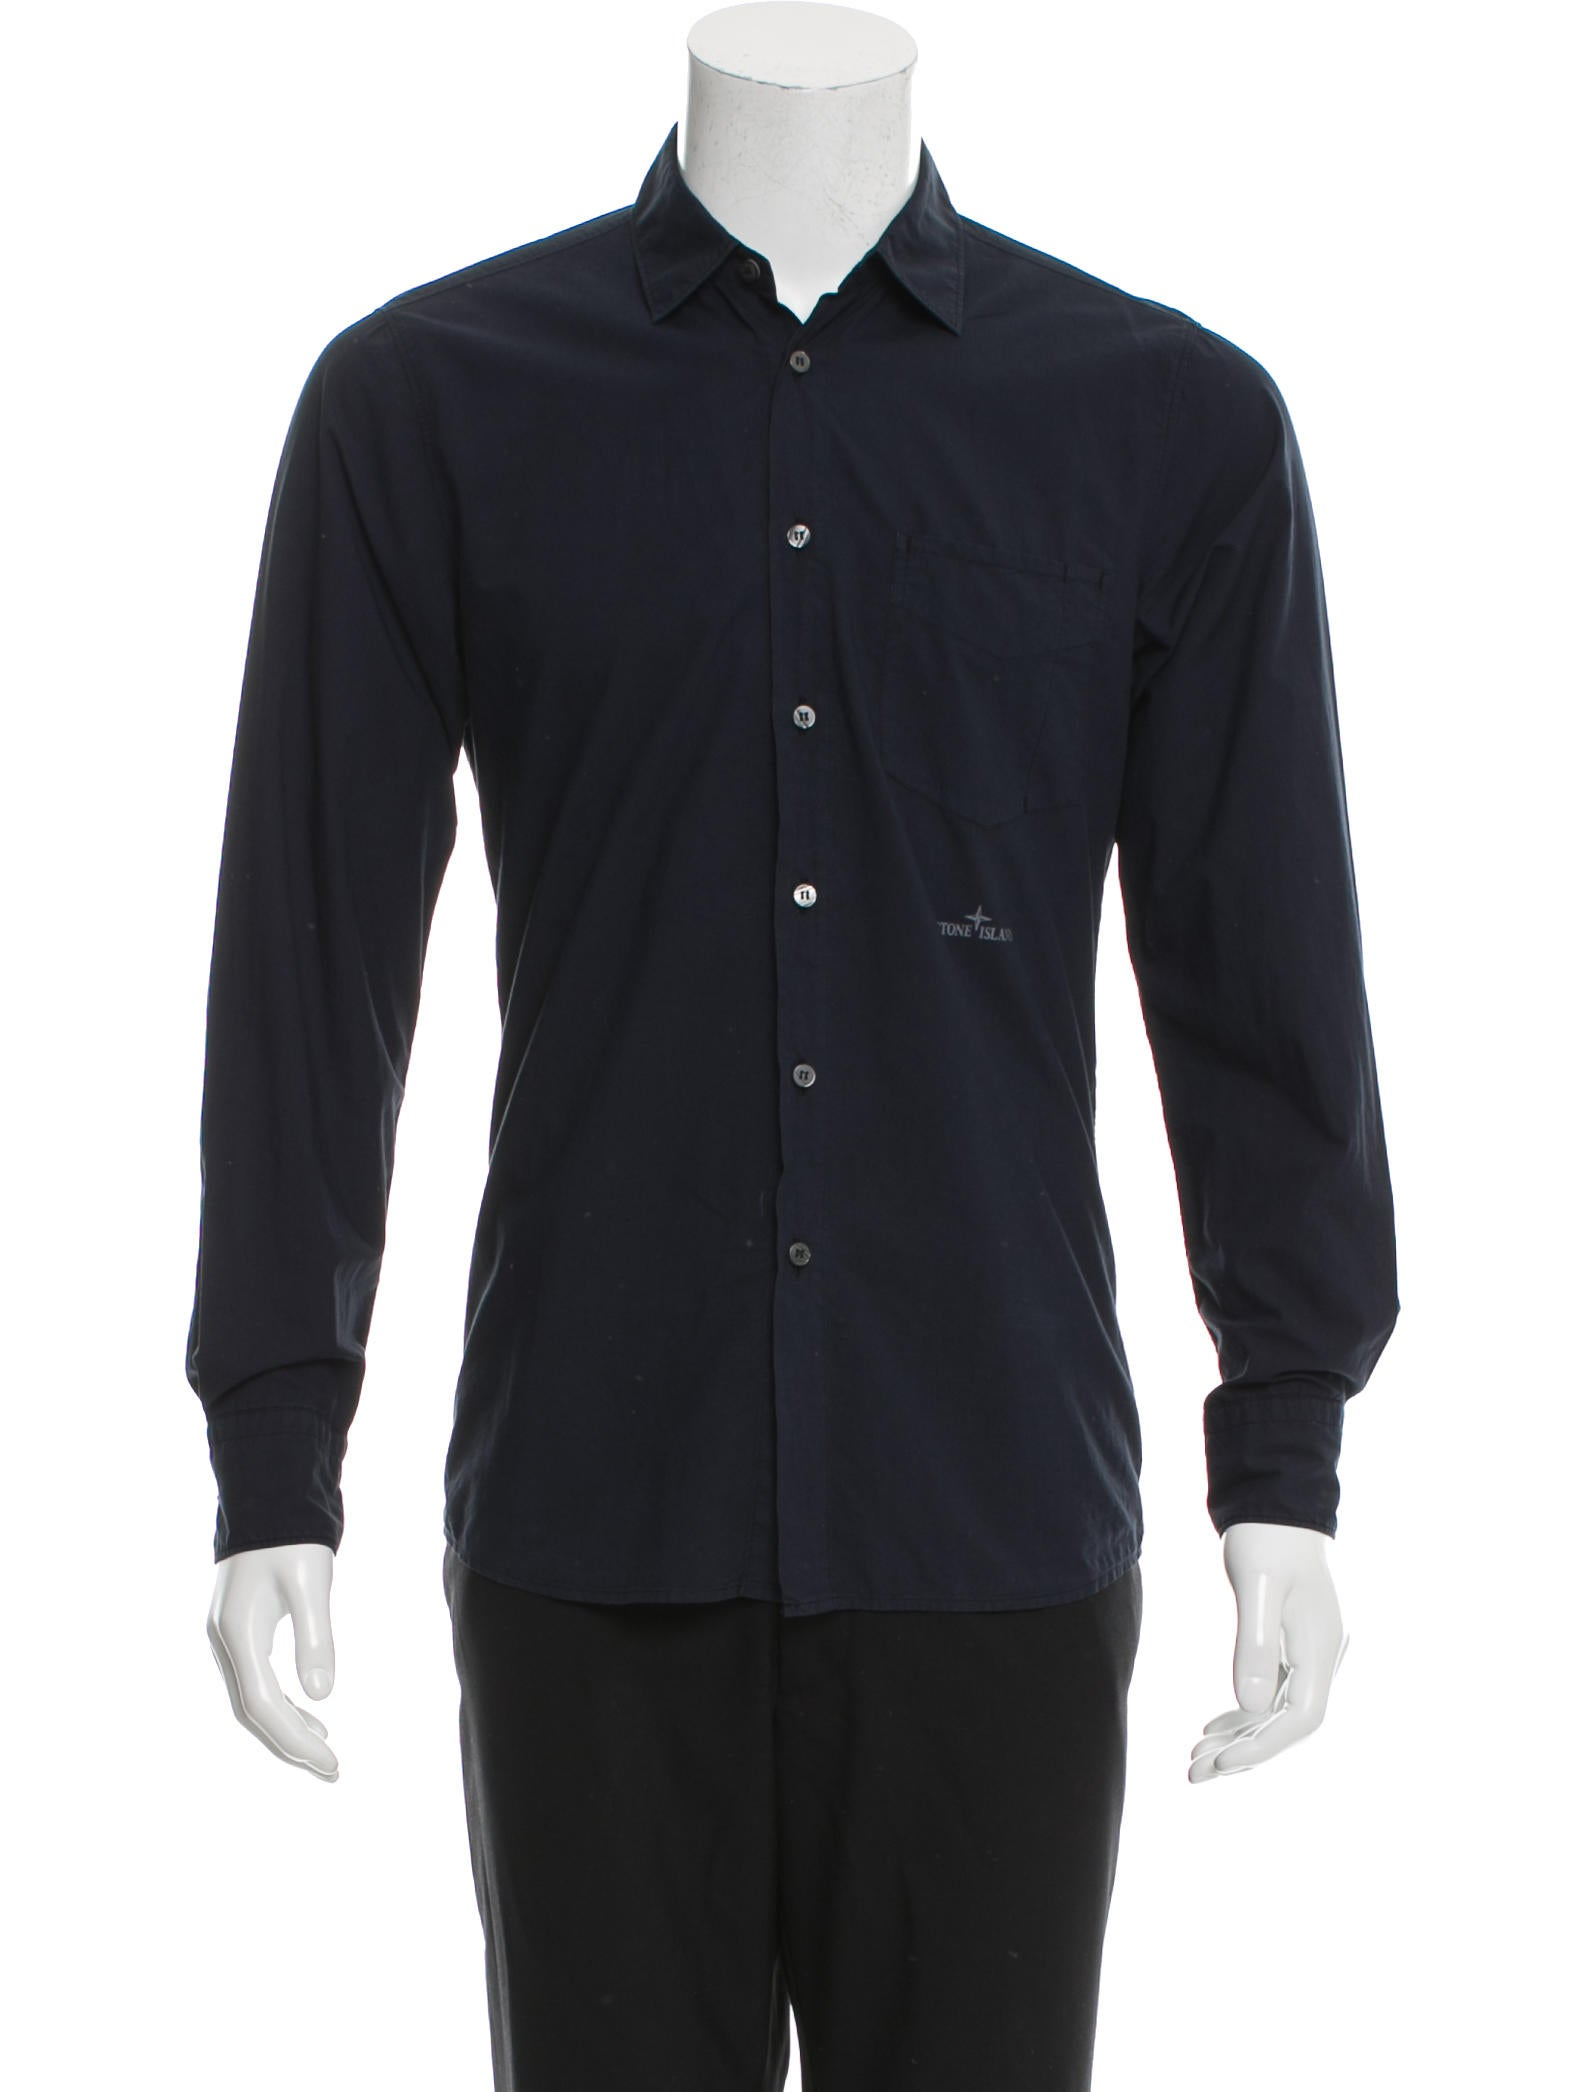 Stone island long sleeve button up shirt clothing for Cool long sleeve button up shirts